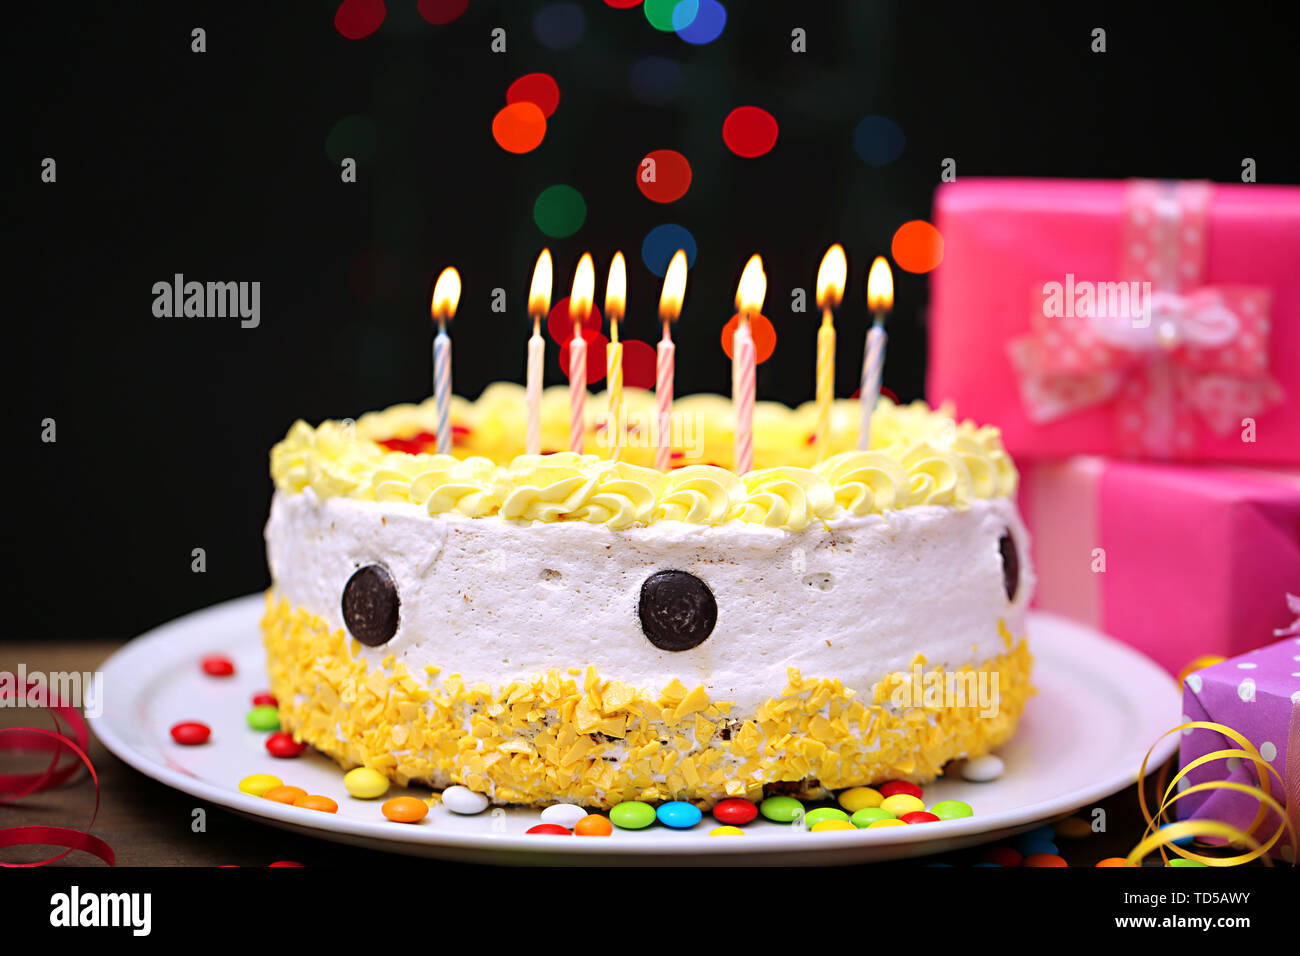 Miraculous Happy Birthday Cake And Ts On Black Background Stock Photo Personalised Birthday Cards Petedlily Jamesorg